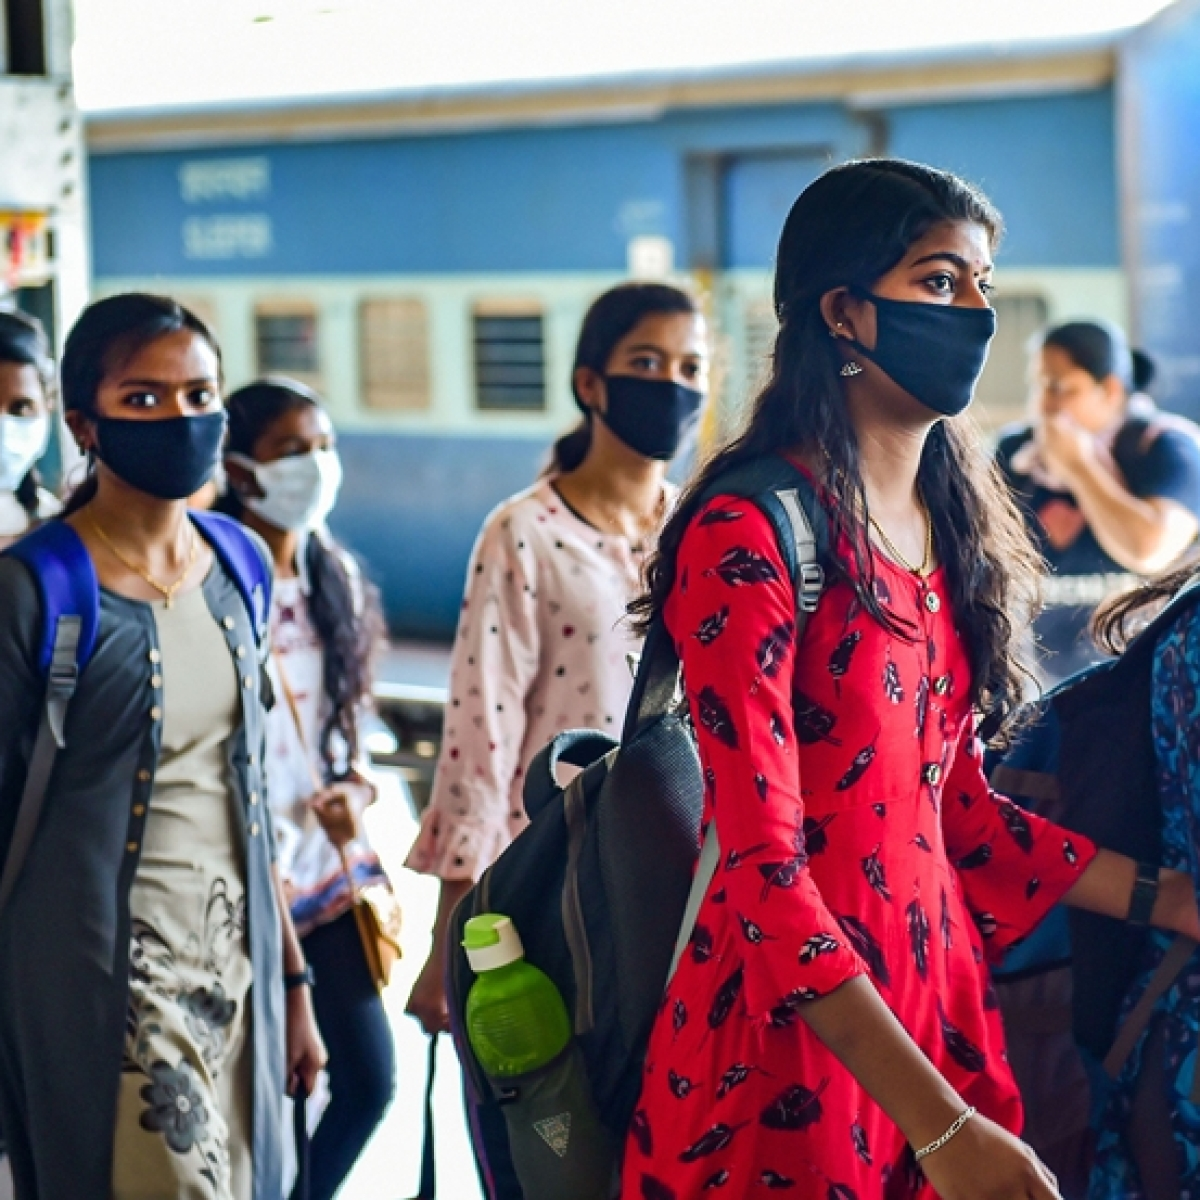 Coronavirus in India: Only testing symptomatic travelers, lab-confirmed infected, and health workers, says ICMR scientist